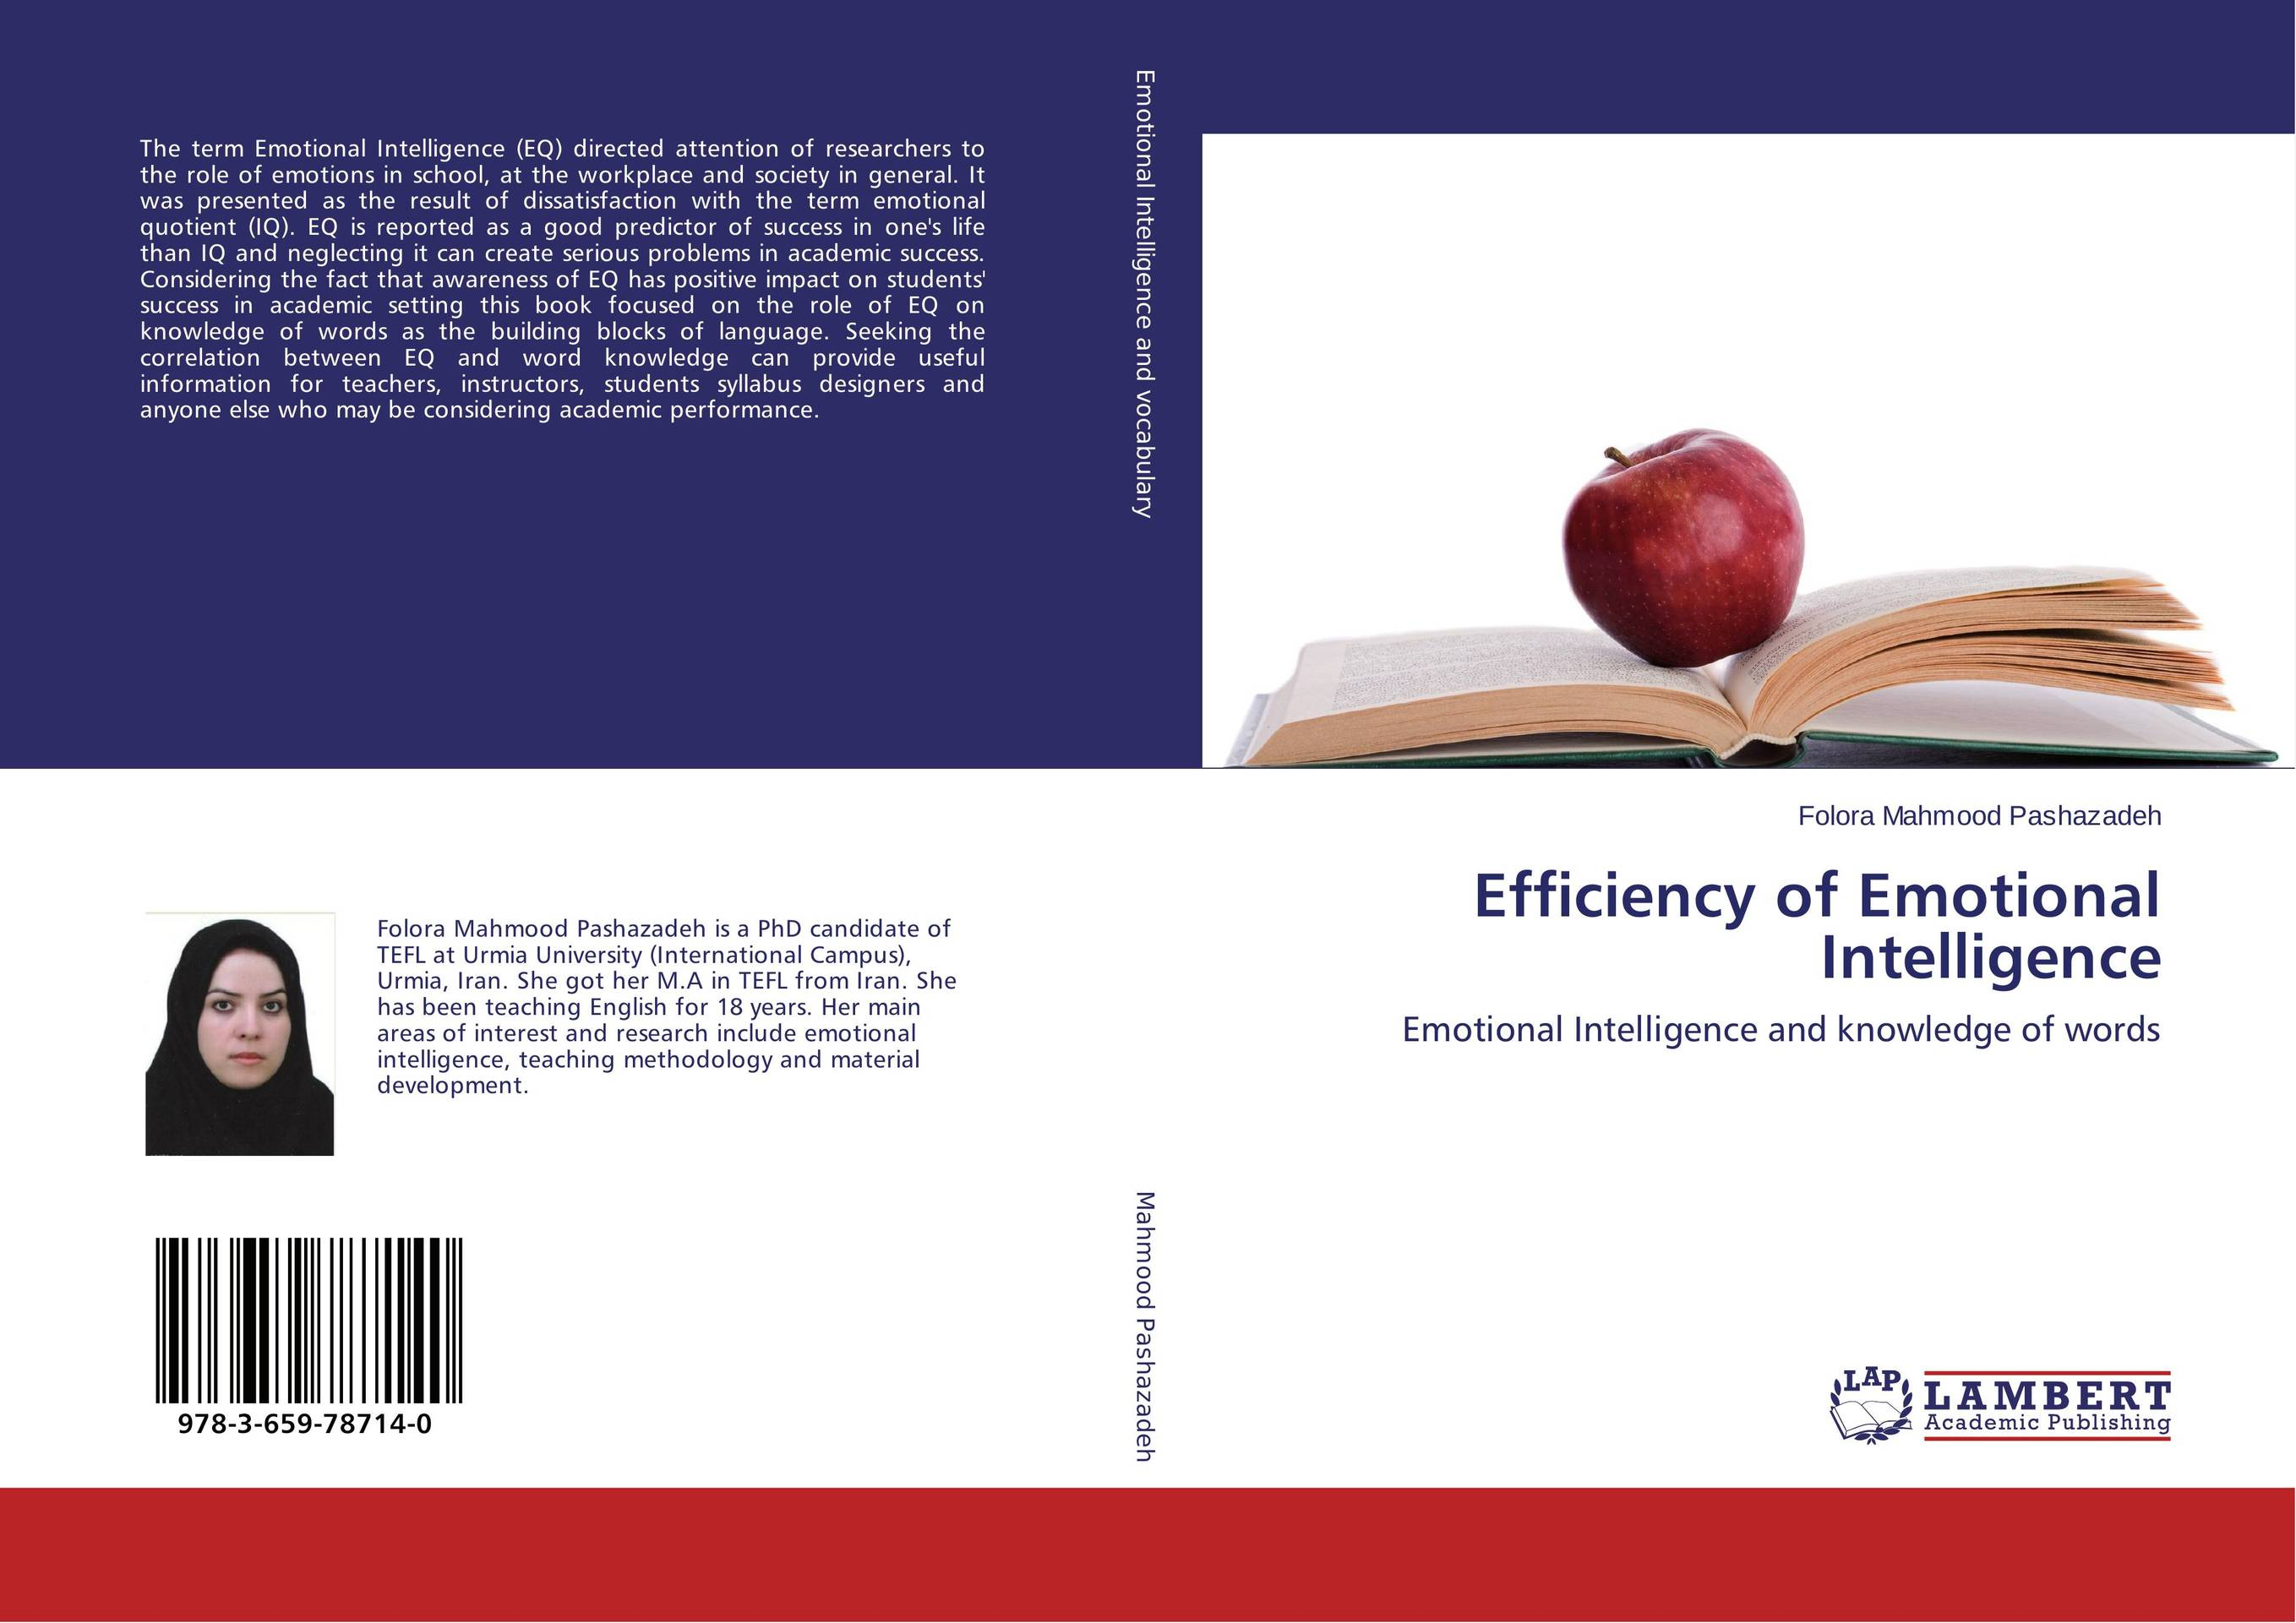 the impact of emotional intelligence on To empirically test the impact of emotional intelligence dimensions on the performance university teachers 14 scope of the study this study examines the phenomena of emotional intelligence among public and private higher.